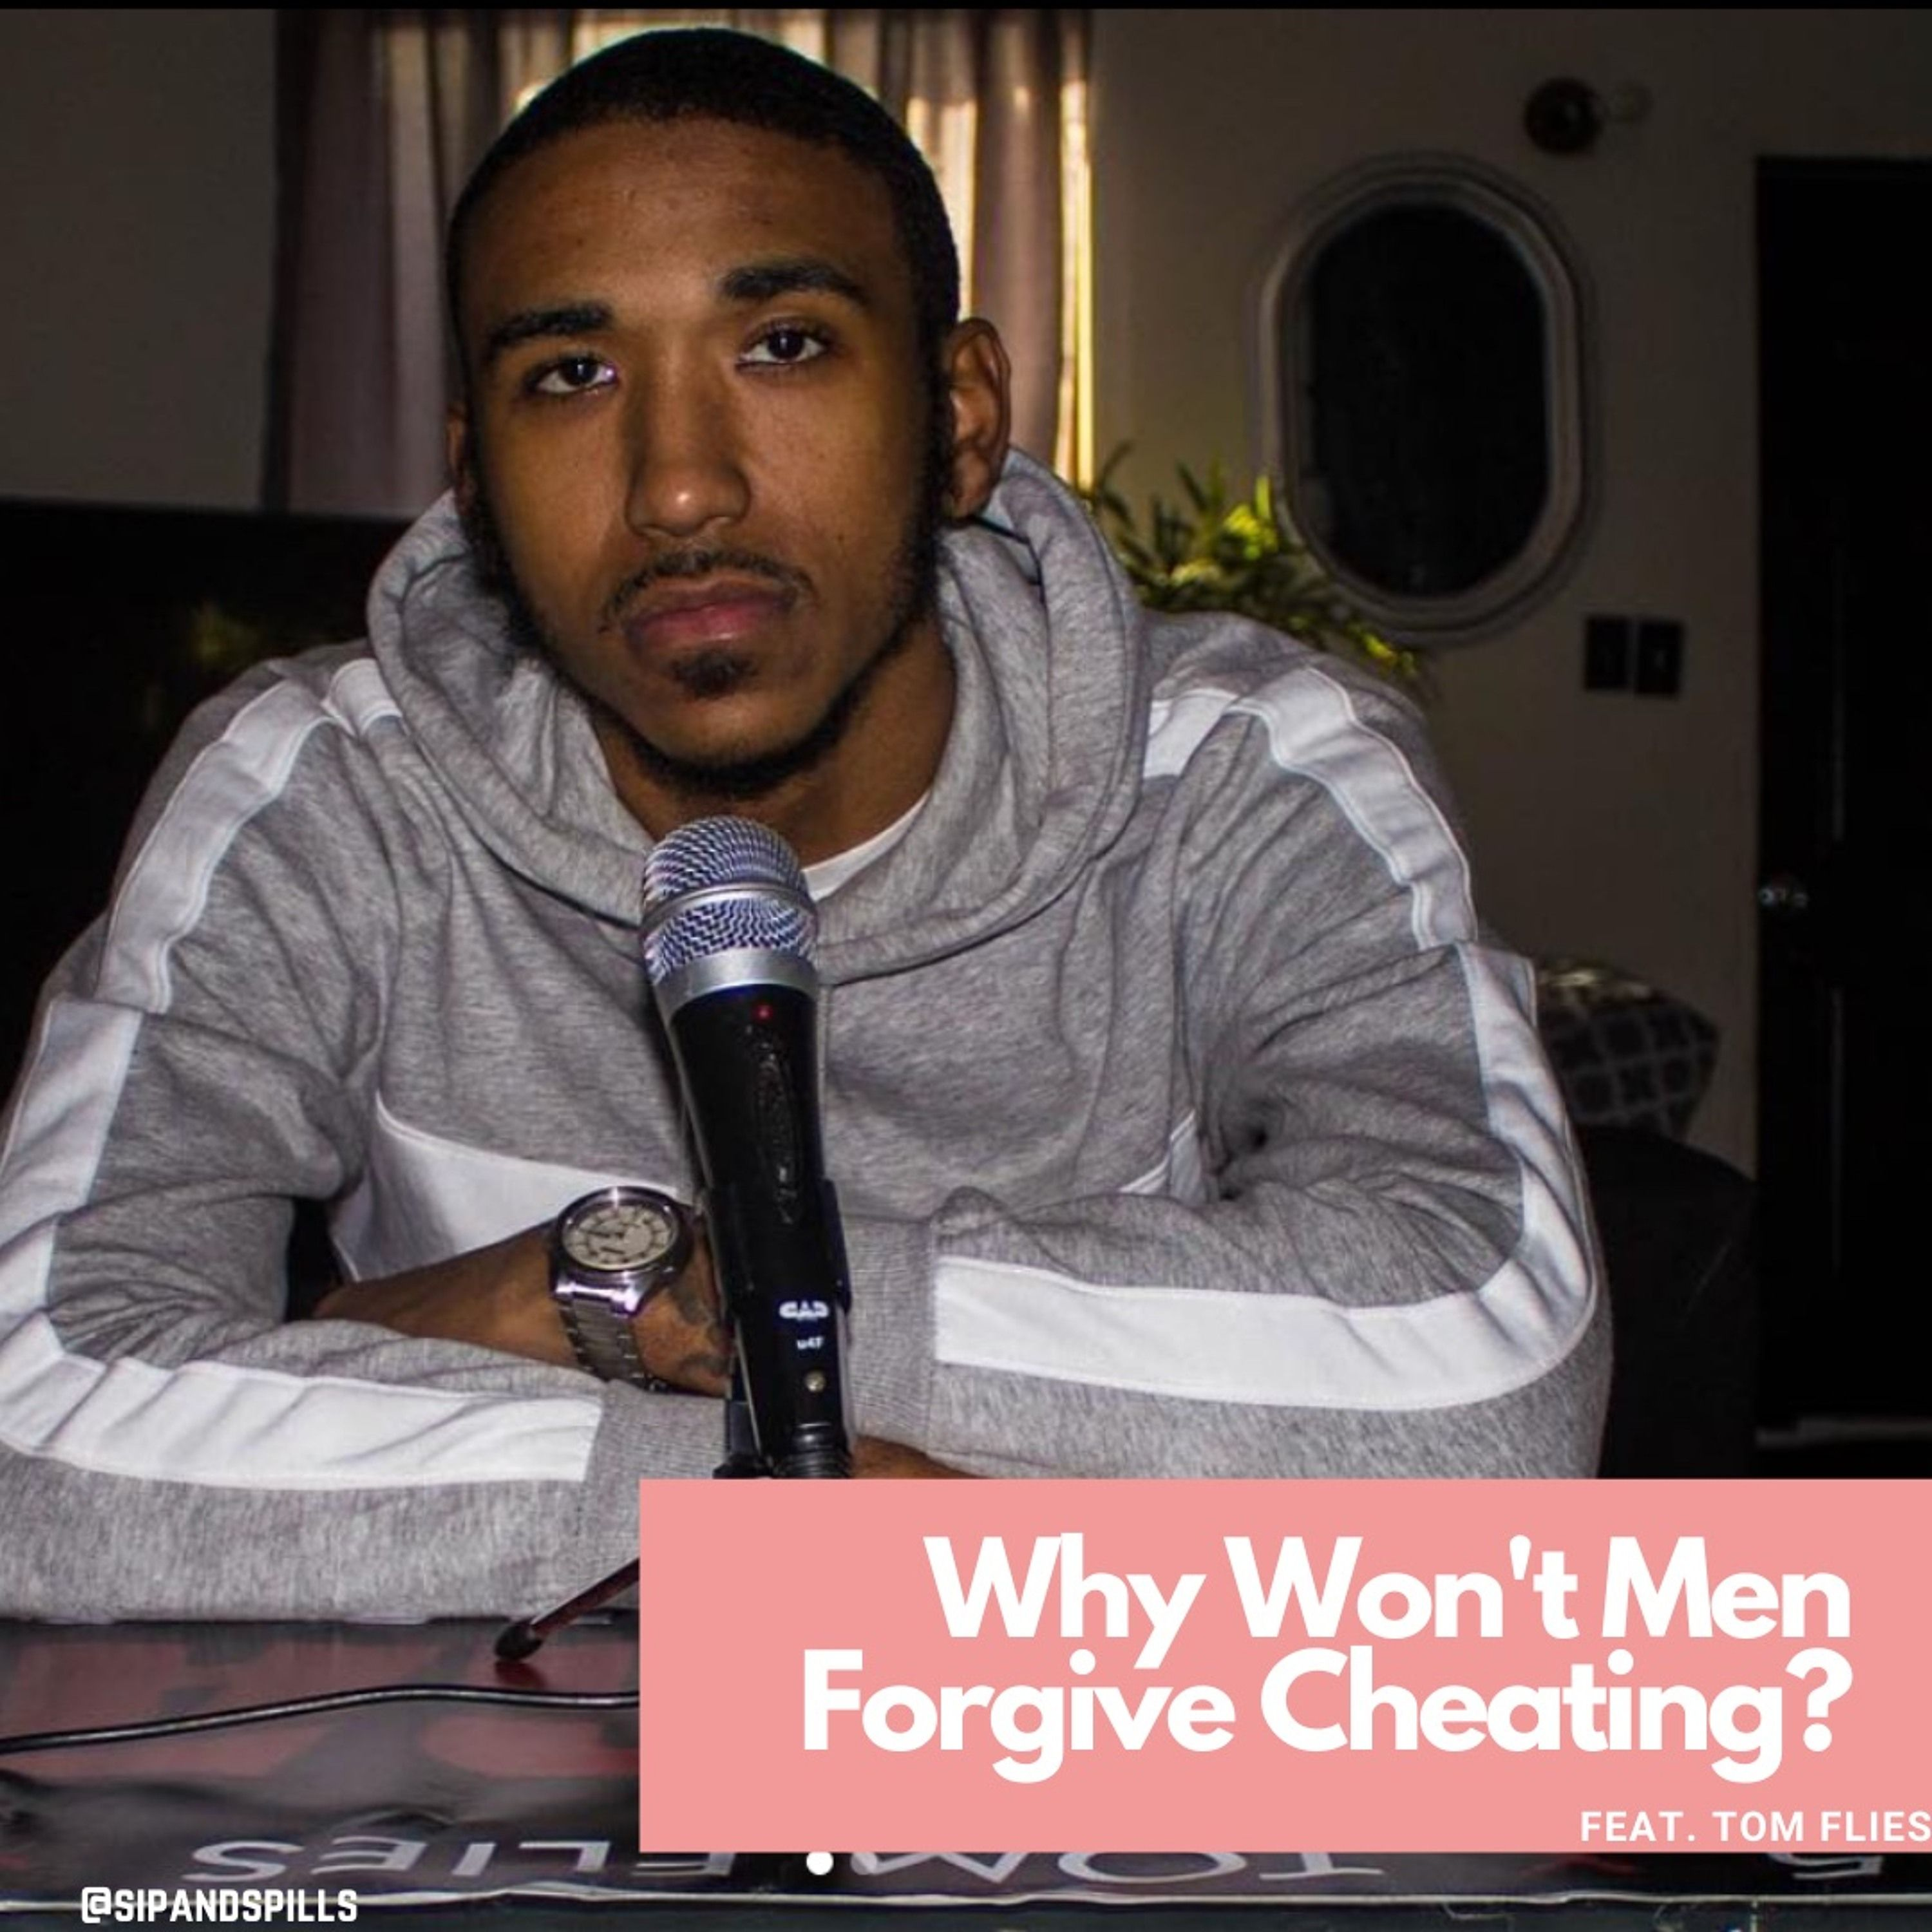 Why Men Don't Forgive Cheating? with Tom Flies